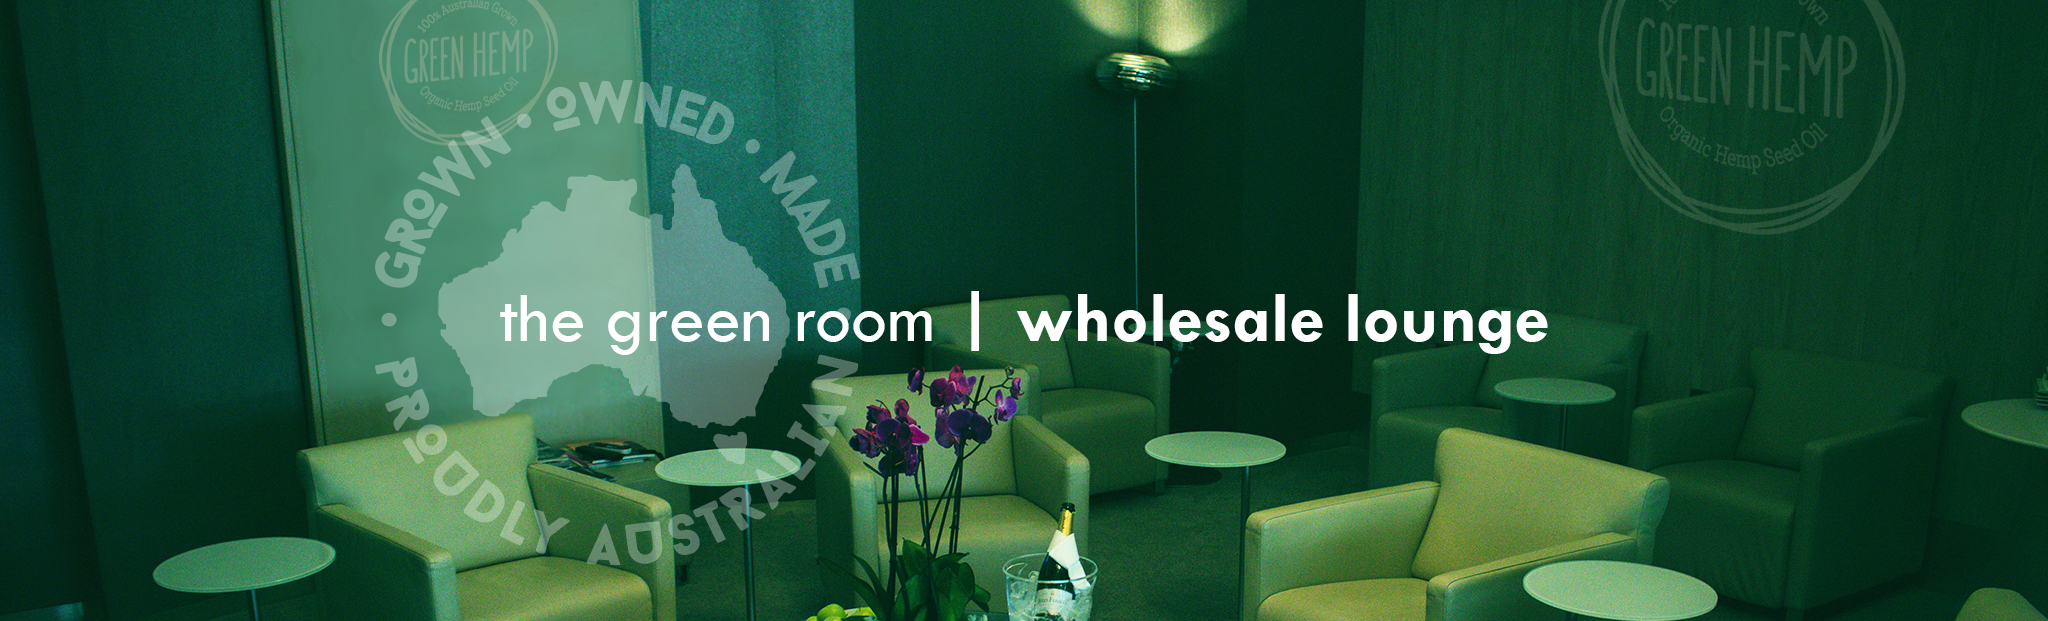 the green room wholesale lounge members lounge